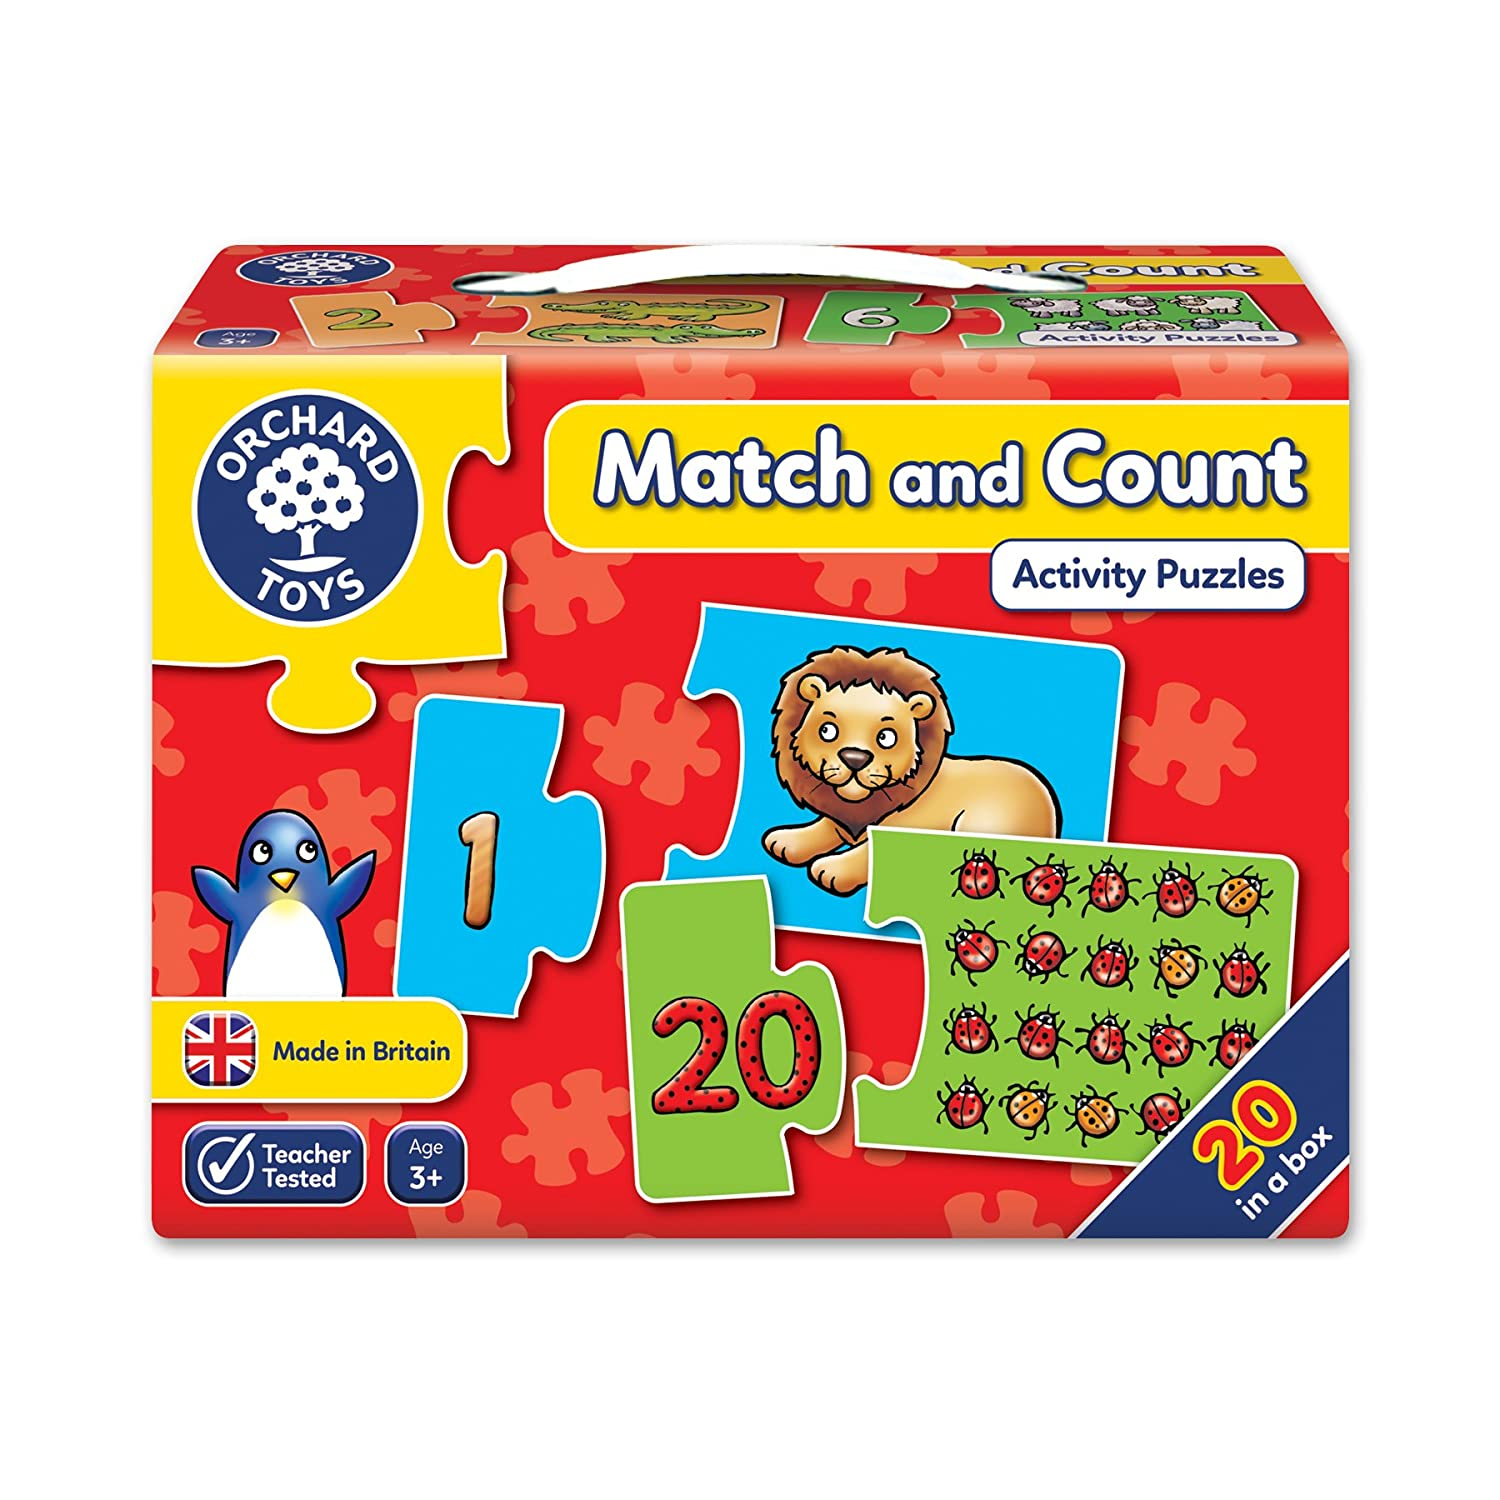 Match and Count Puzzle